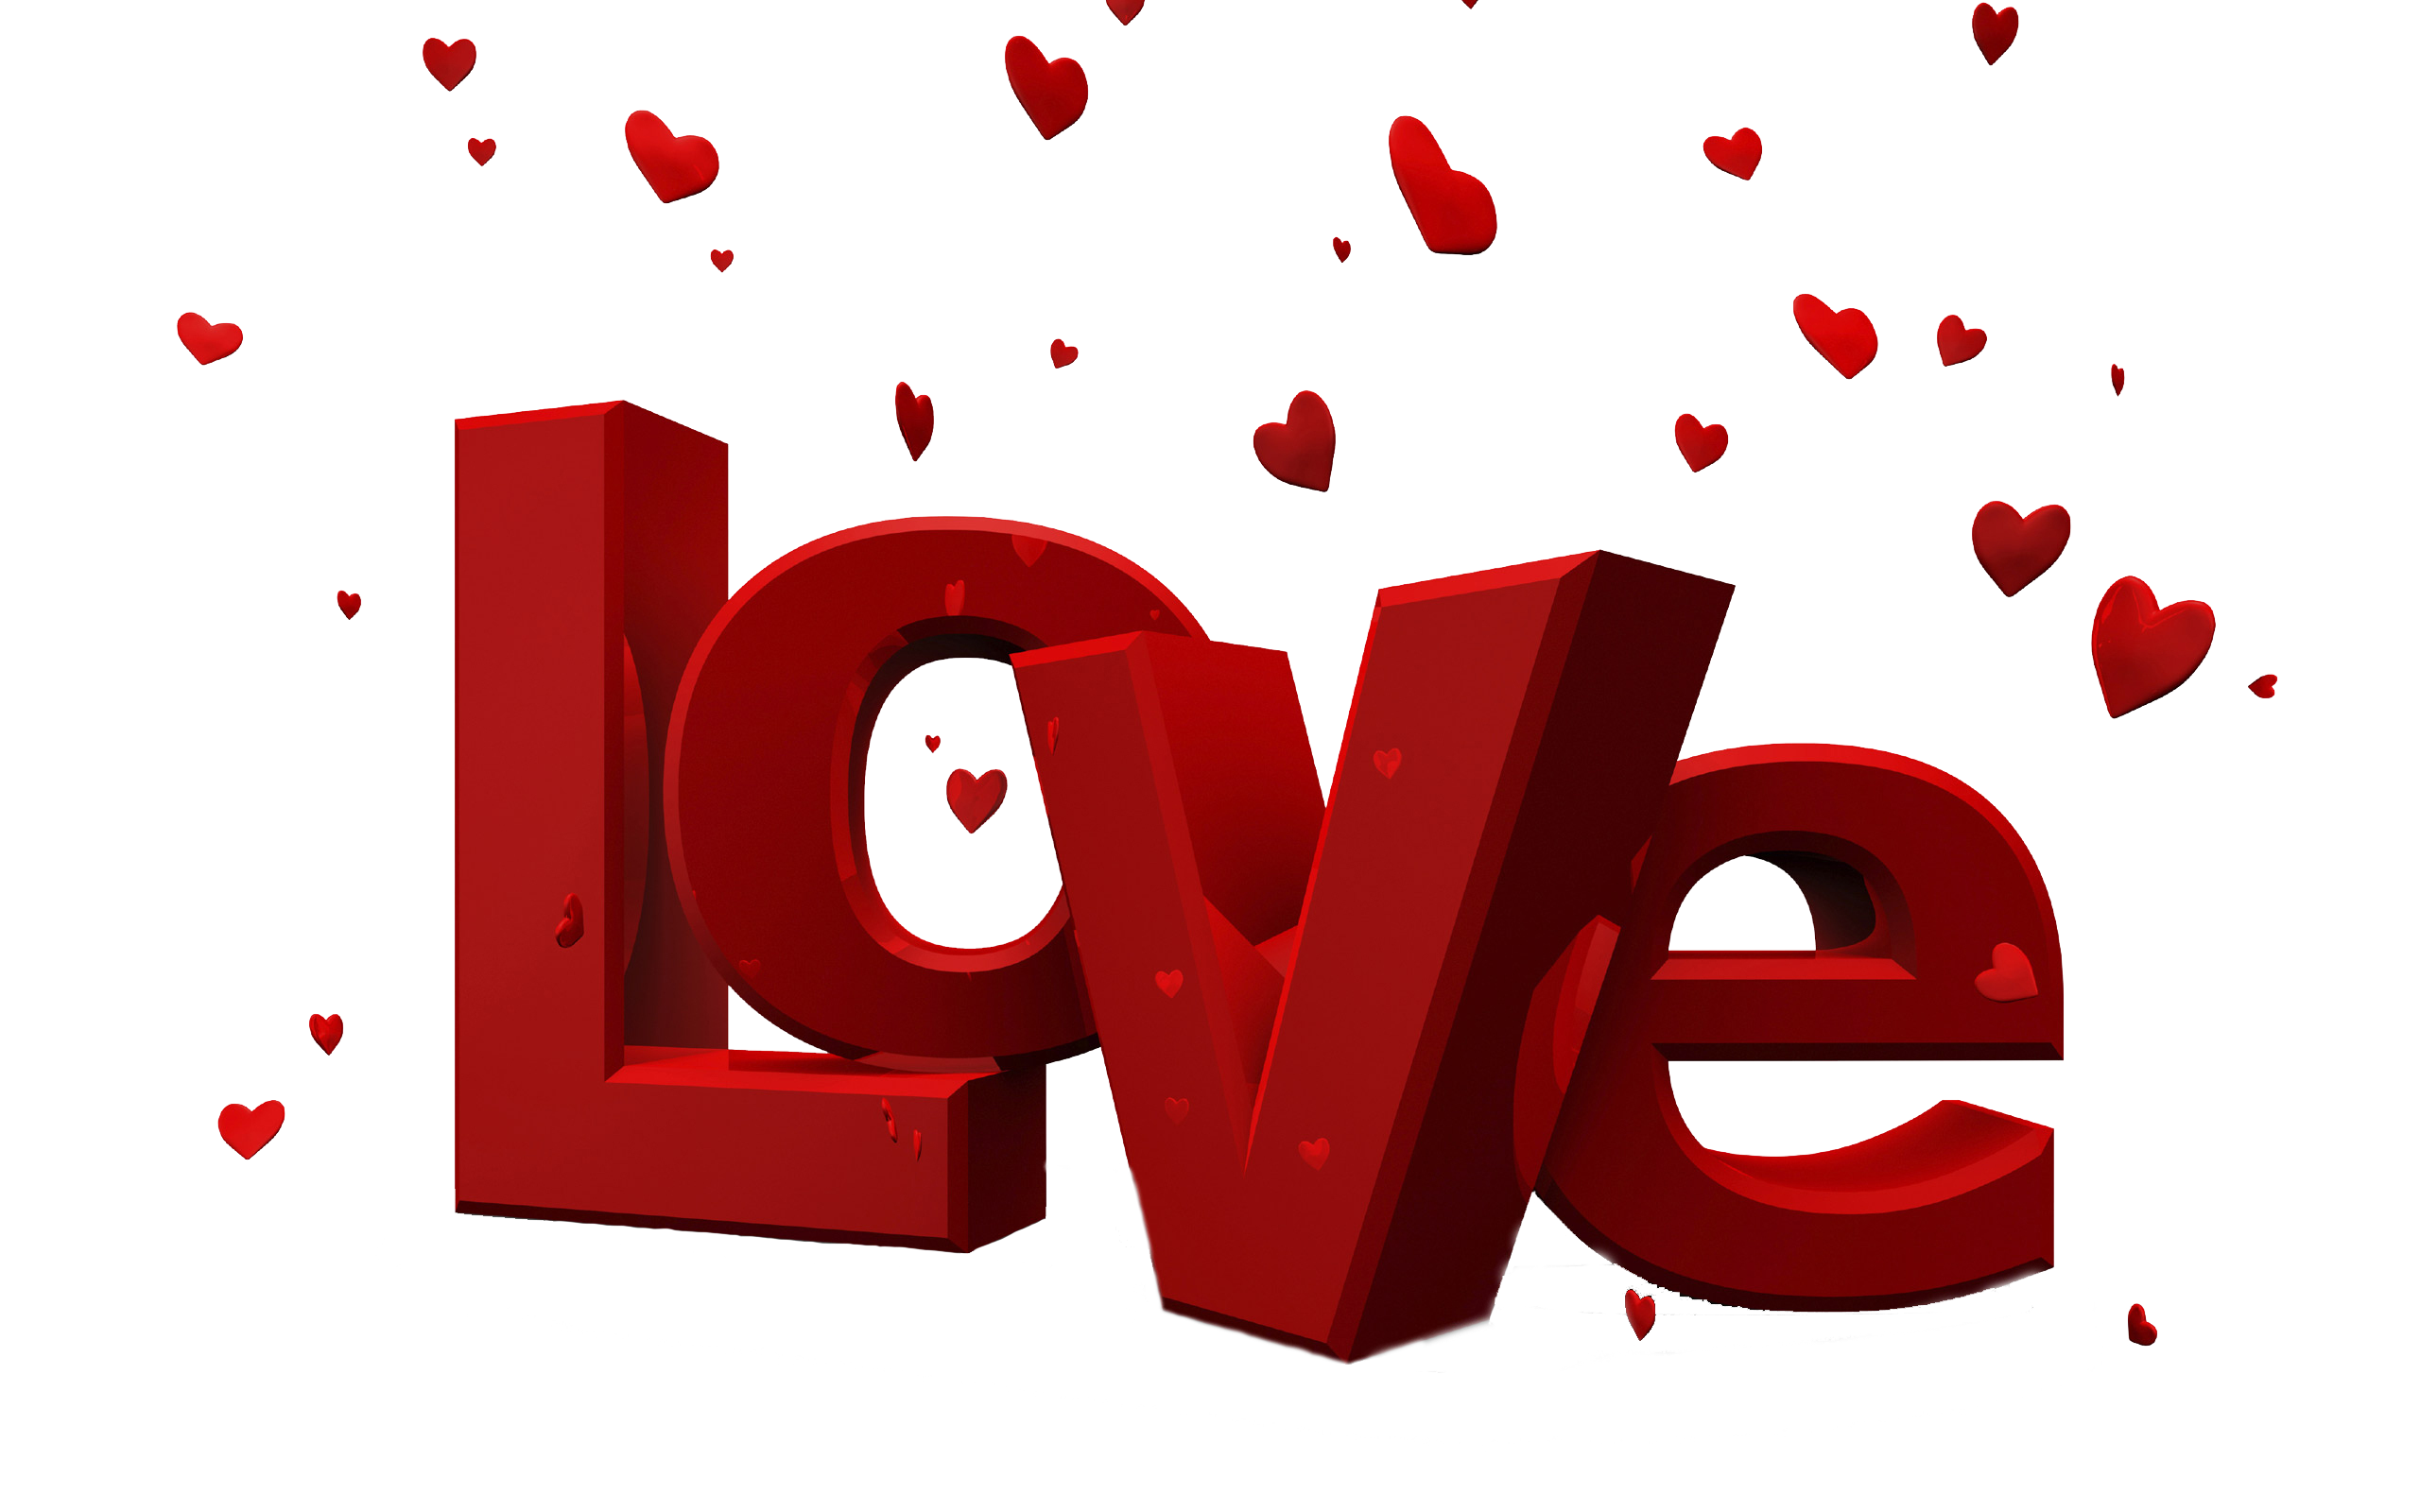 Love Download Png PNG Image - PNG Love